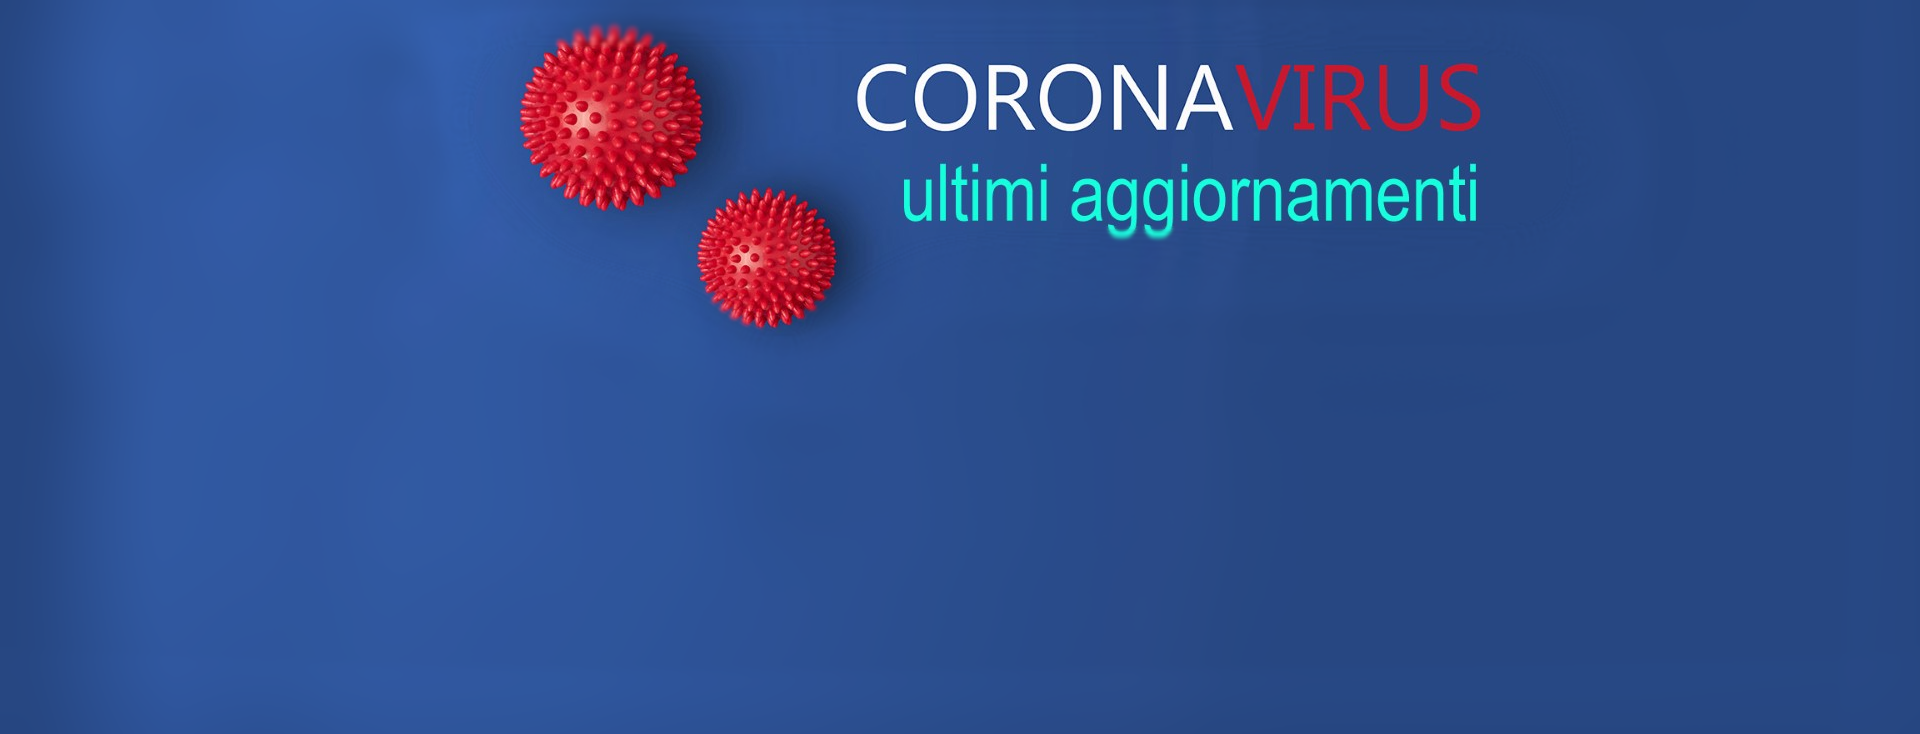 Revisione policy interna emergenza Coronavirus